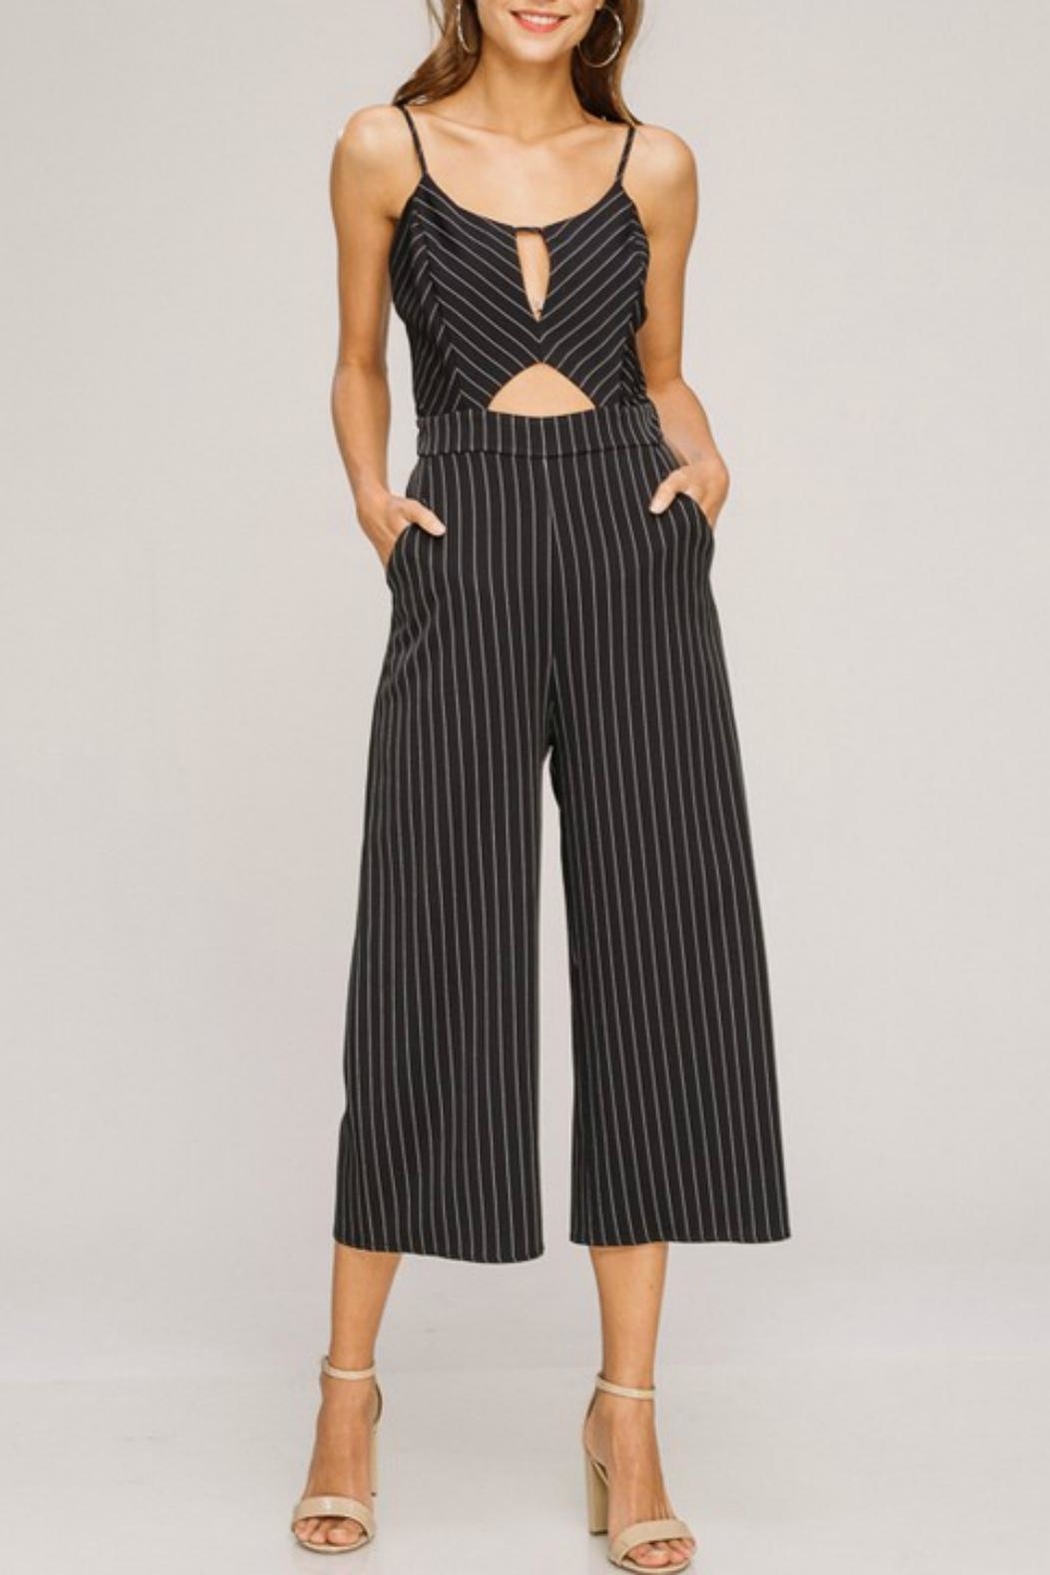 Pretty Little Things Pinstripe Jumpsuit - Main Image